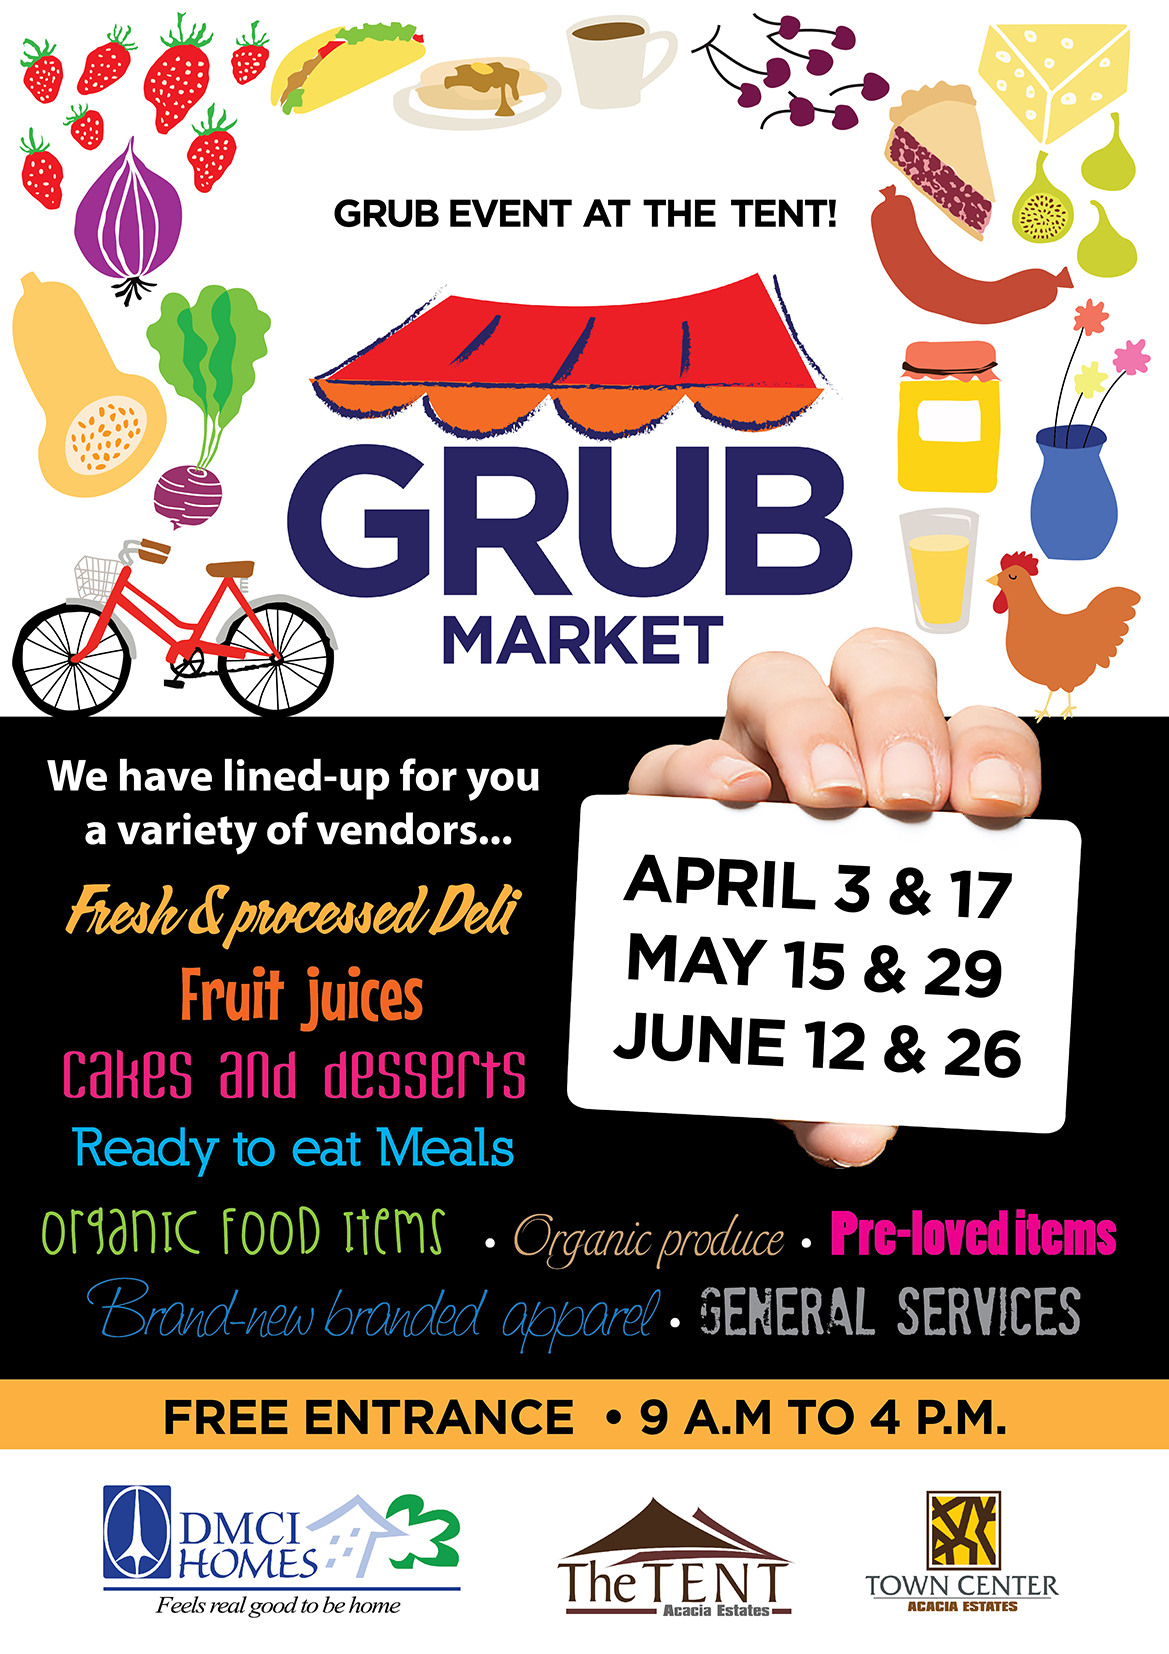 Forks Up for Grub Market at The Tent!